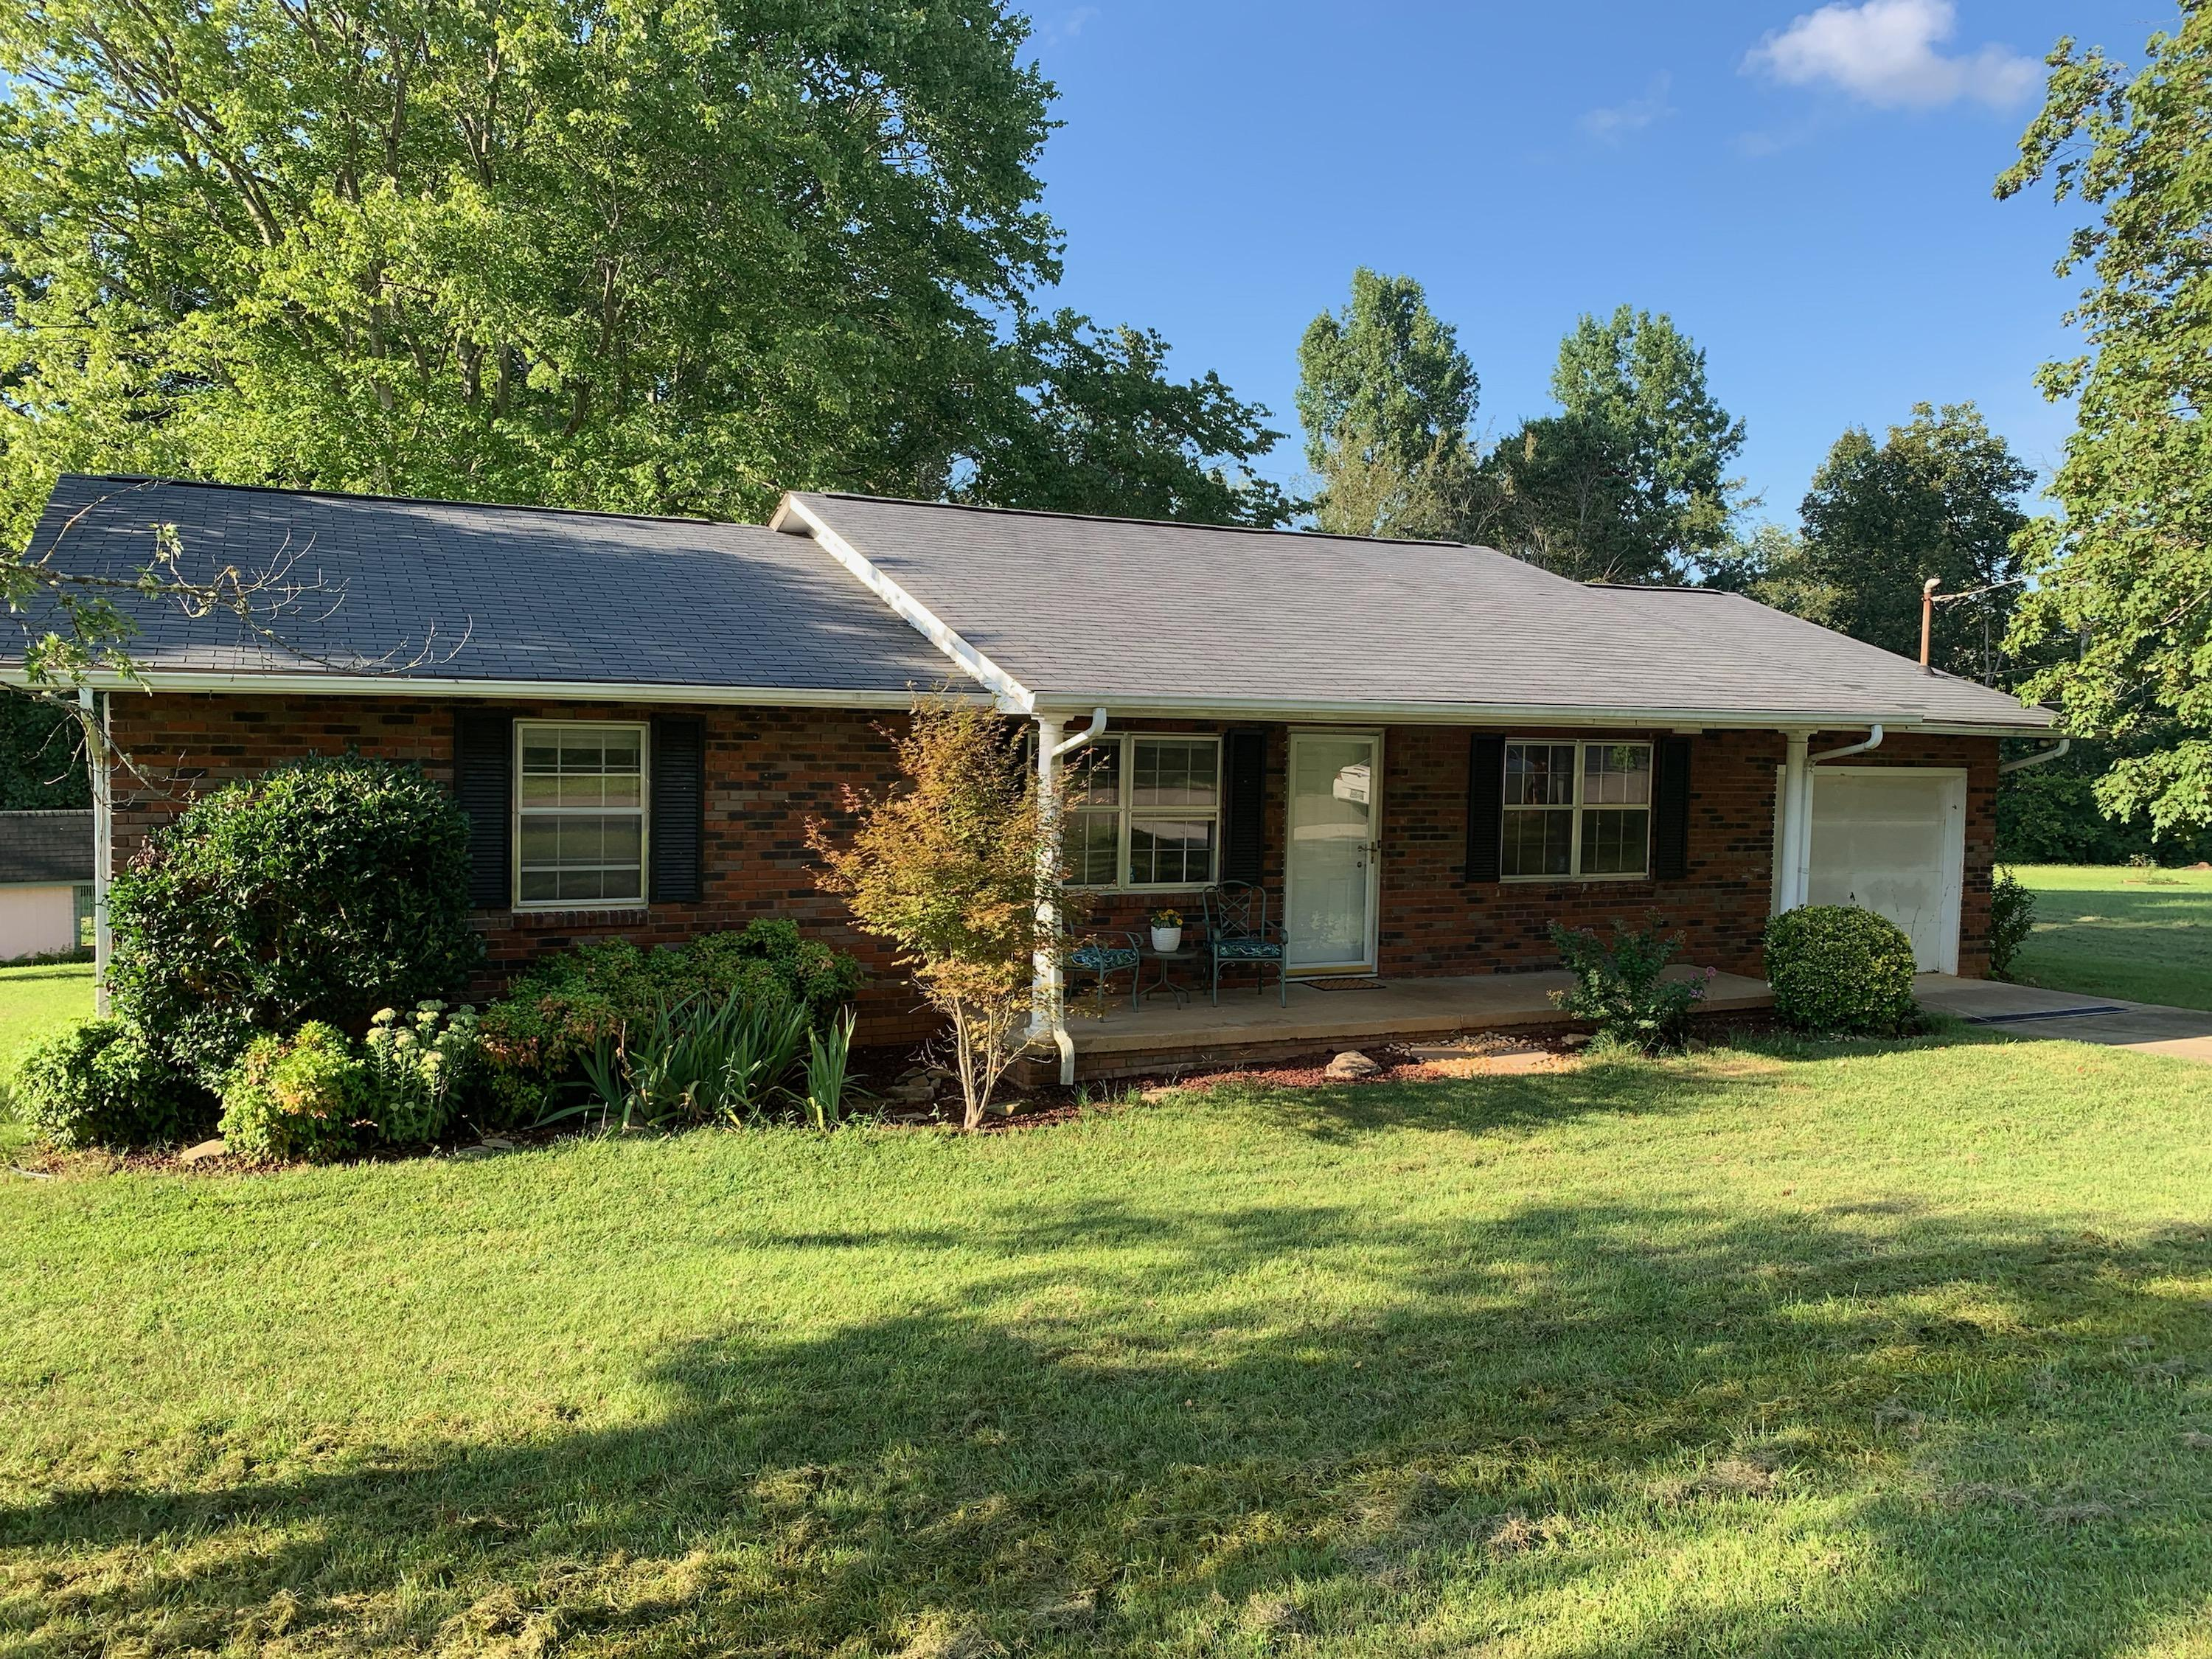 3629 Fountaincrest Drive, Knoxville, Tennessee 37918, 3 Bedrooms Bedrooms, ,2 BathroomsBathrooms,Single Family,For Sale,Fountaincrest,1092622